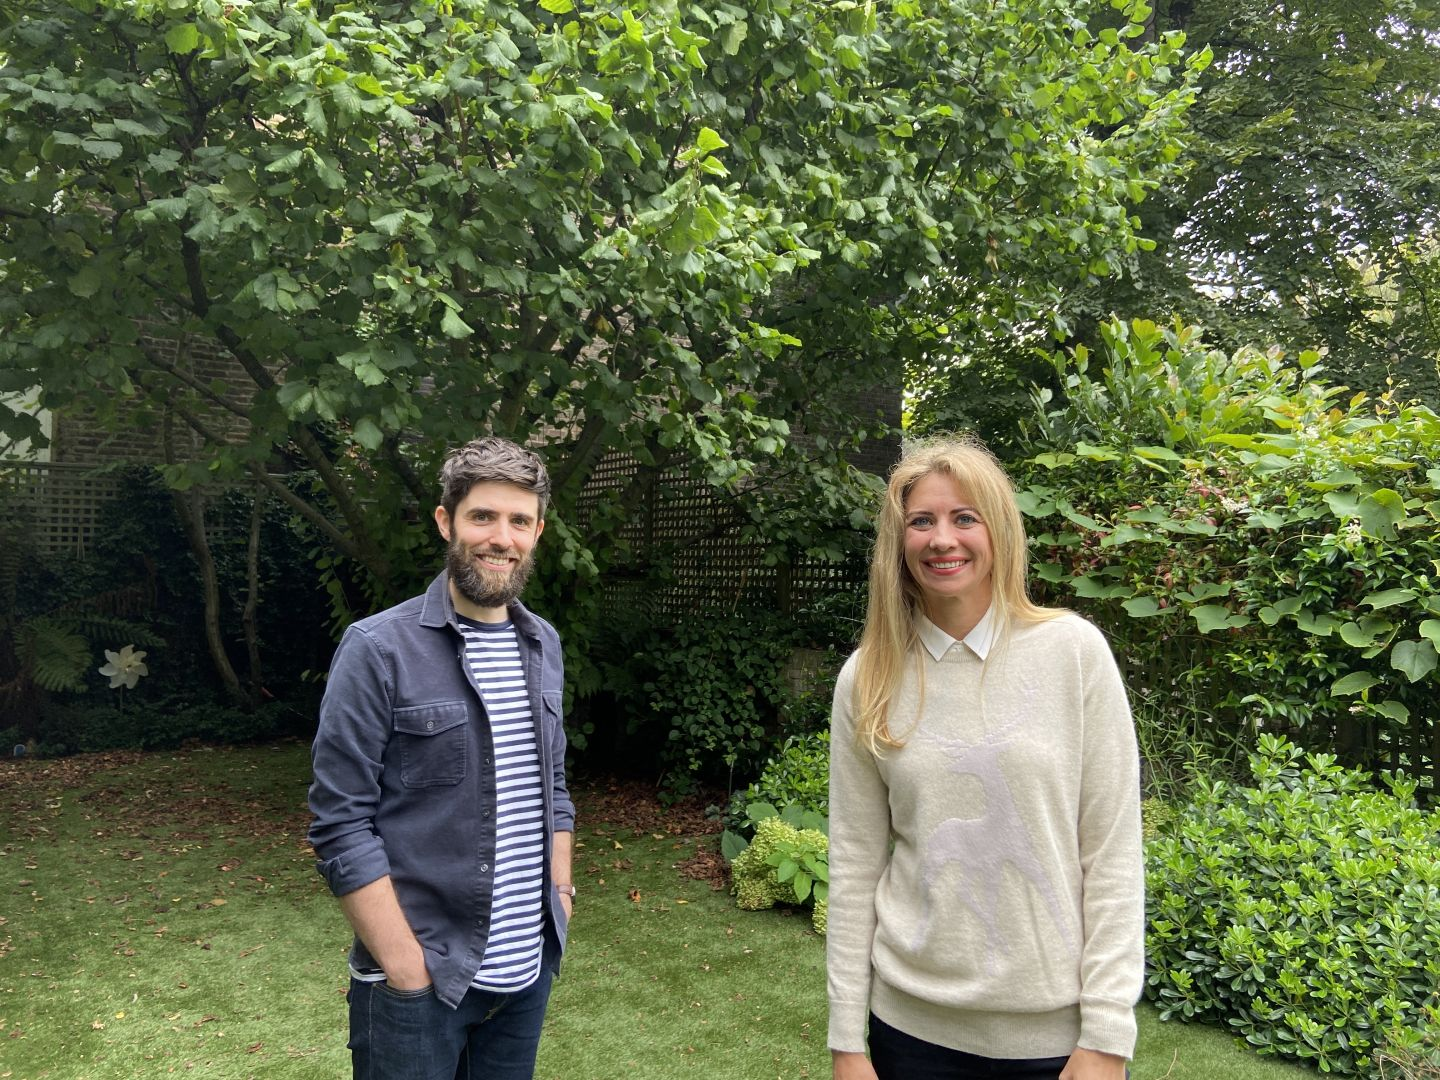 Holly Branson and Virgin StartUp CEO Andy Fishburn smiling in a garden